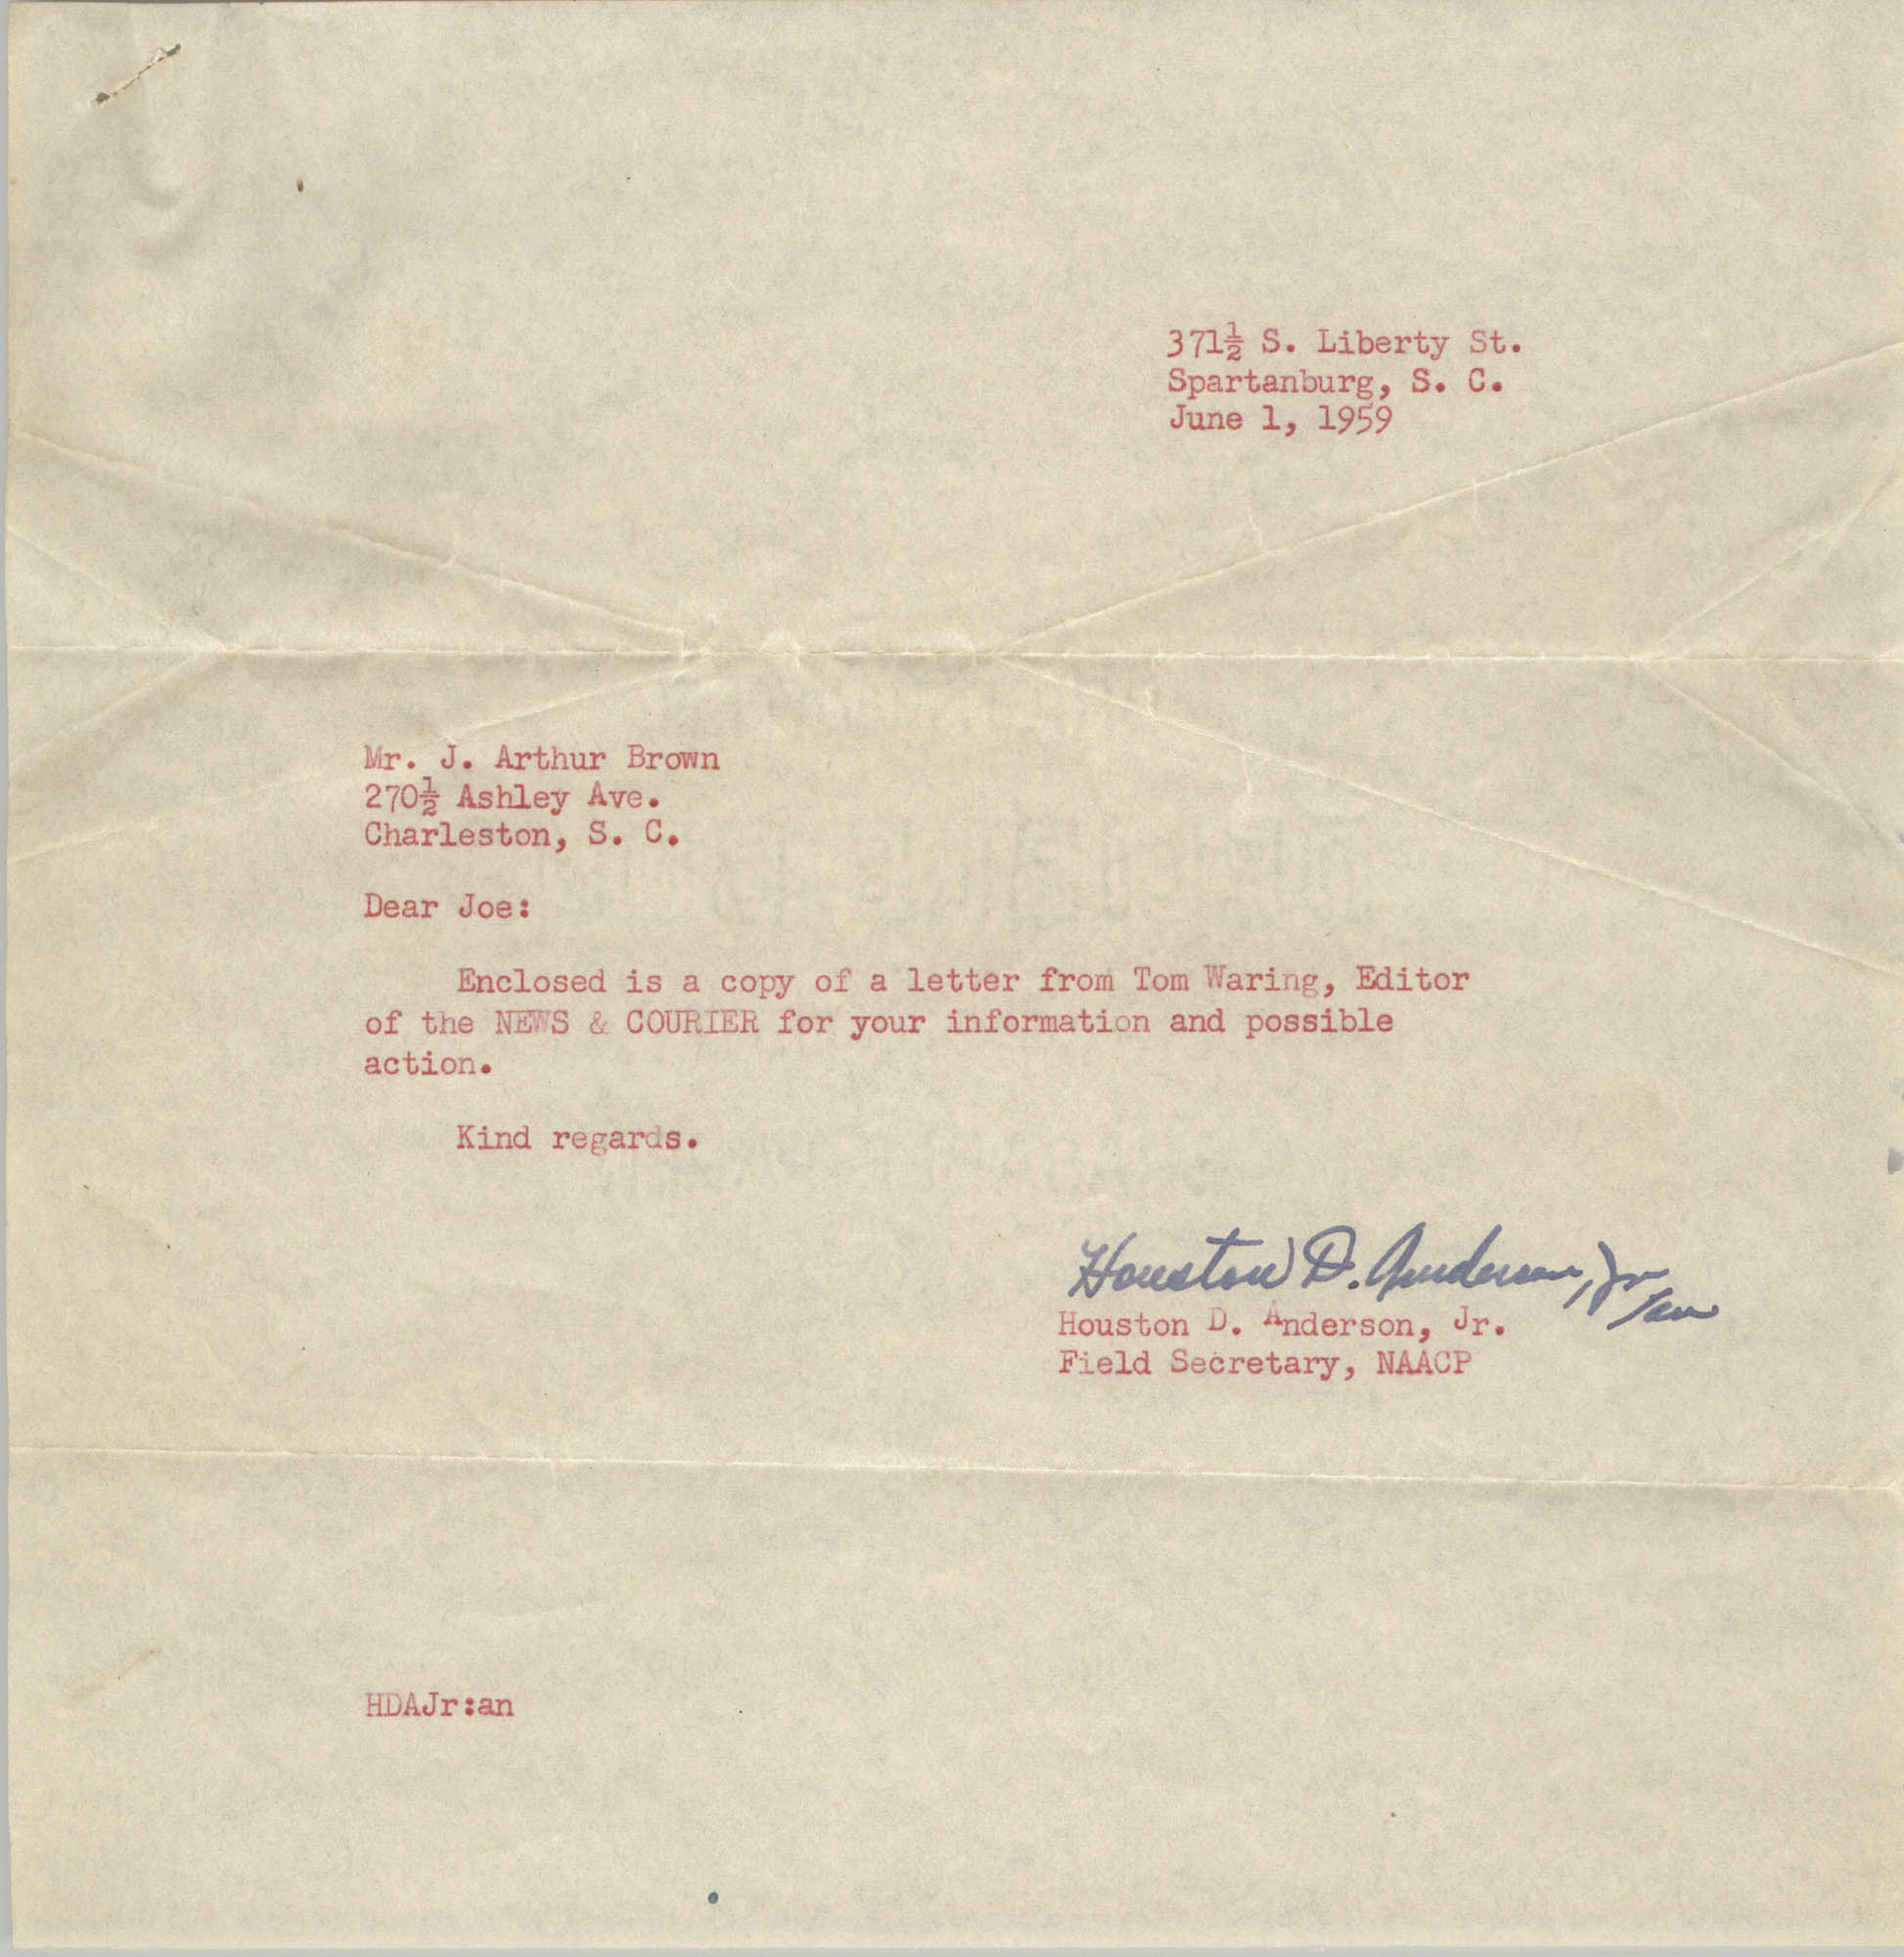 Letter from Houston D. Anderson, Jr. to J. Arthur Brown, June 1, 1959